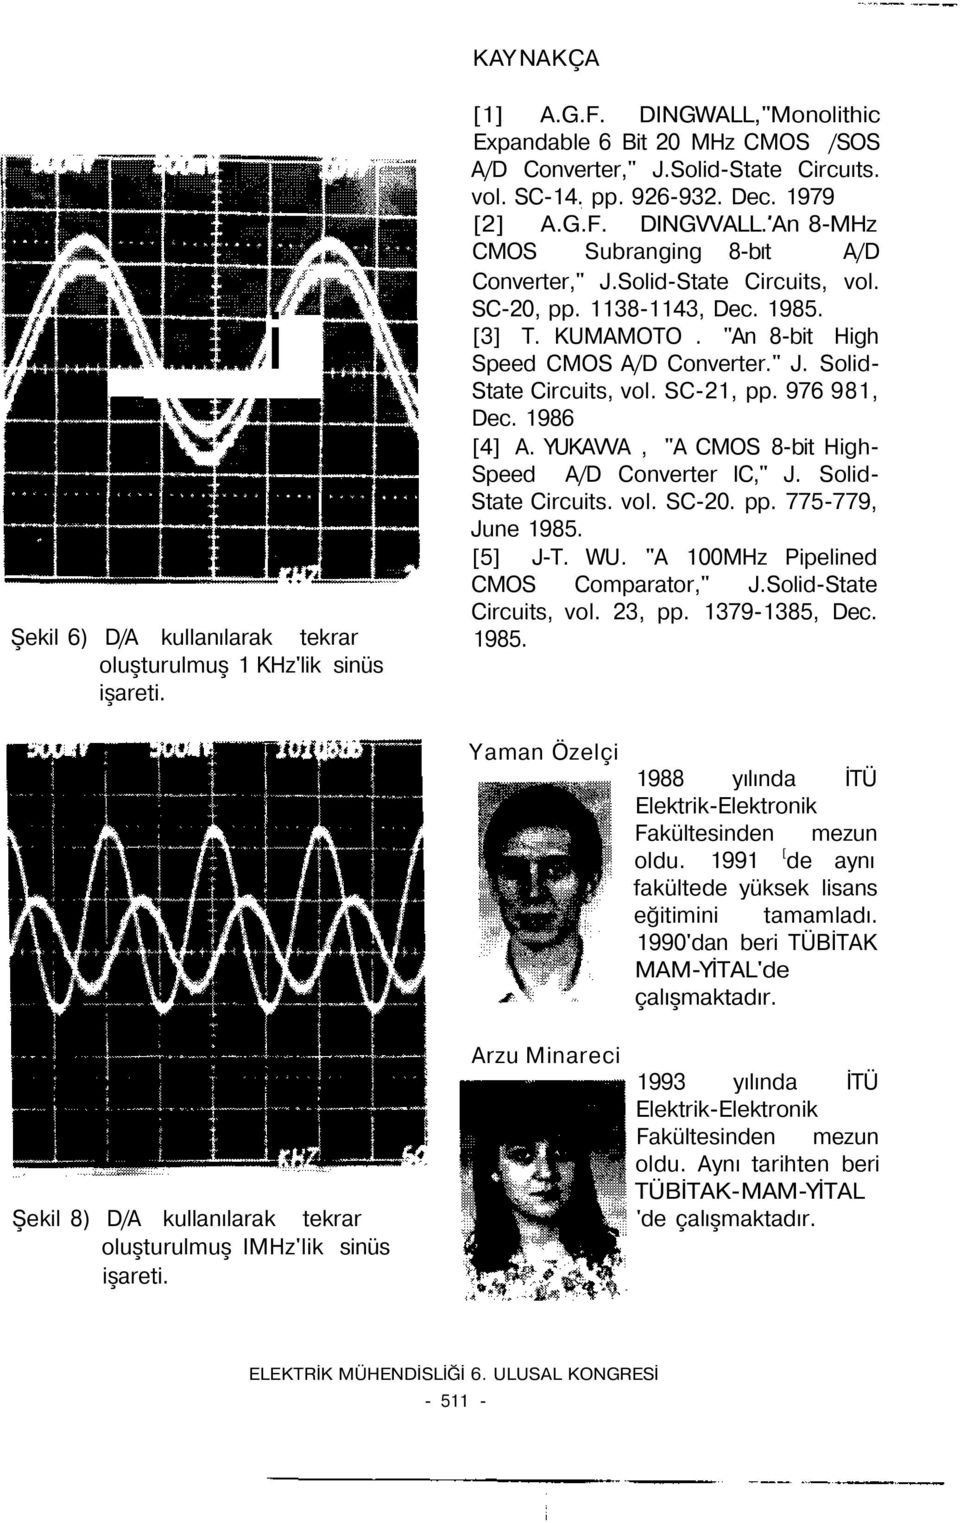 """An 8-bit High Speed CMOS A/D Converter."" J. Solid- State Circuits, vol. SC-21, pp. 976 981, Dec. 1986 [4] A. YUKAVVA, ""A CMOS 8-bit High- Speed A/D Converter IC,"" J. Solid- State Circuits. vol. SC-20."